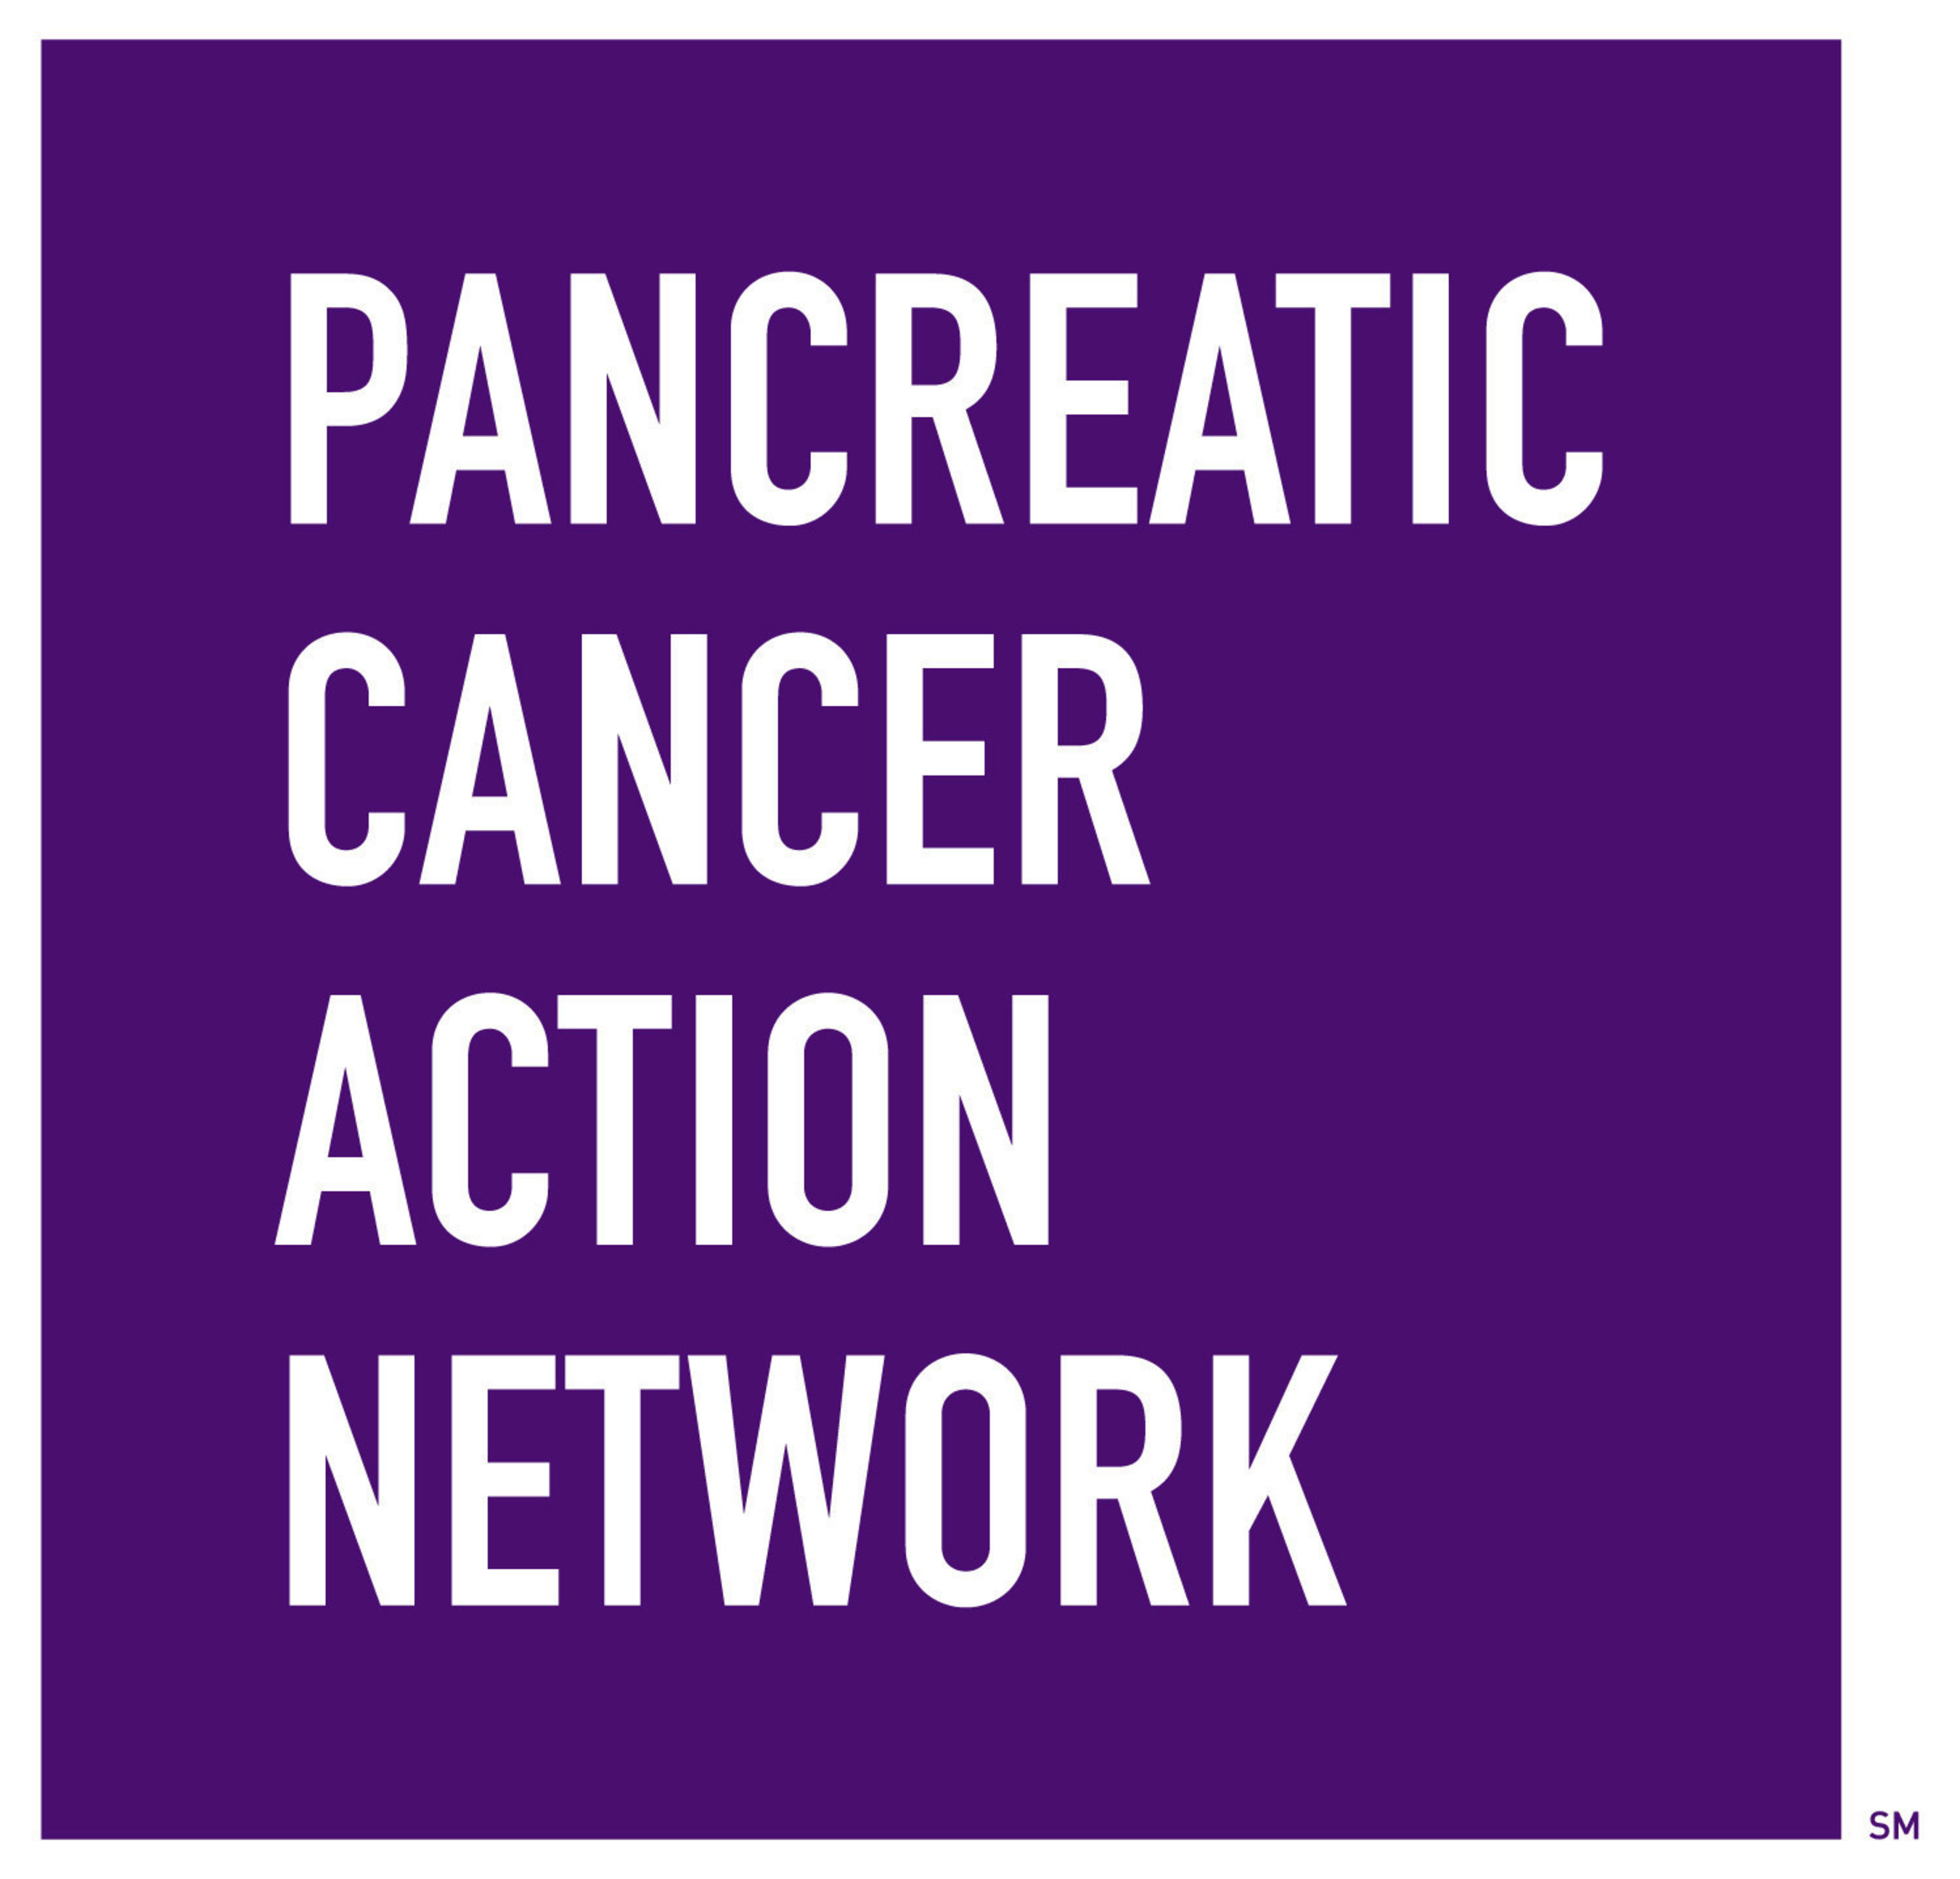 Pancreatic Cancer Action Network's Enhanced Patient Services and Clinical Initiatives to Transform the Fight Against Pancreatic Cancer